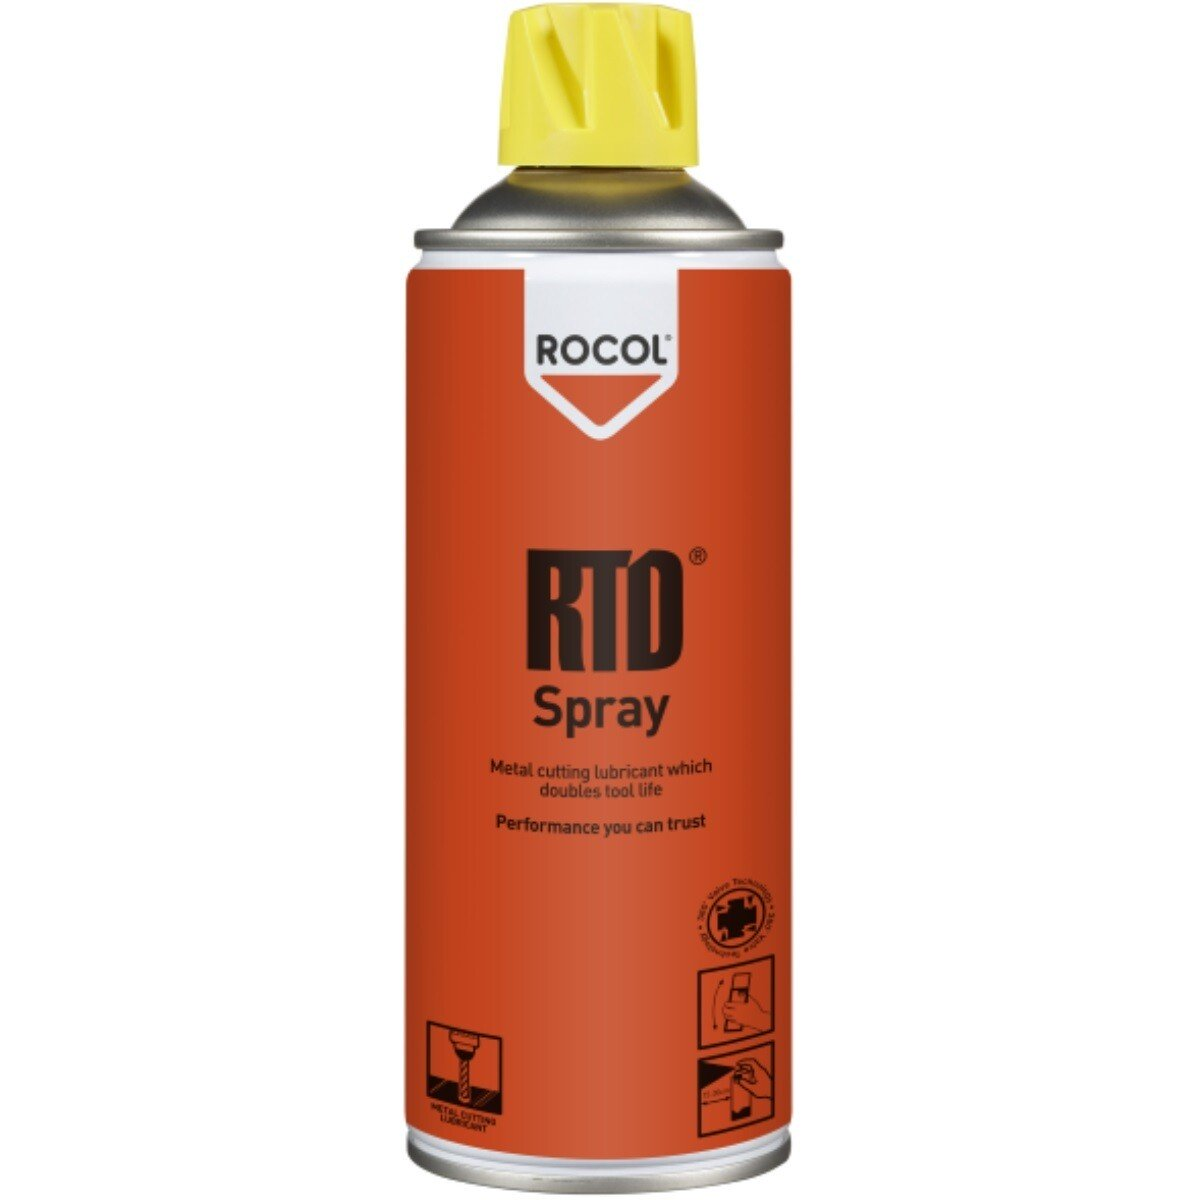 Rocol 53011 RTD Spray - Metal Cutting Lubricant which Doubles Tool Life 400ml